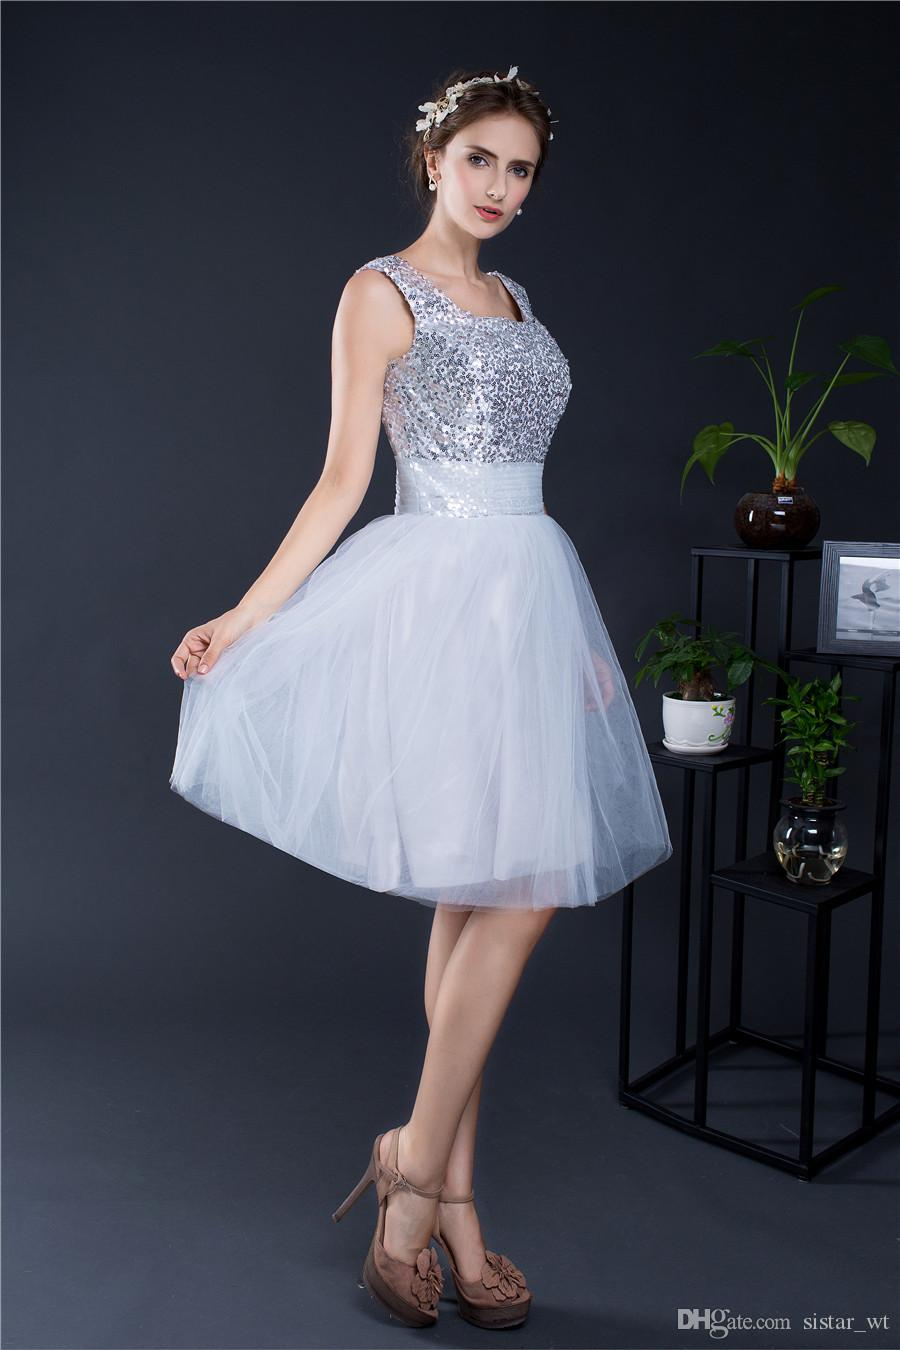 2018 Charming Sexy Sequins Silver Short Women Cocktail Gowns Lady Big Girls Back to School Homecoming Prom Party Evening Mini Dresses